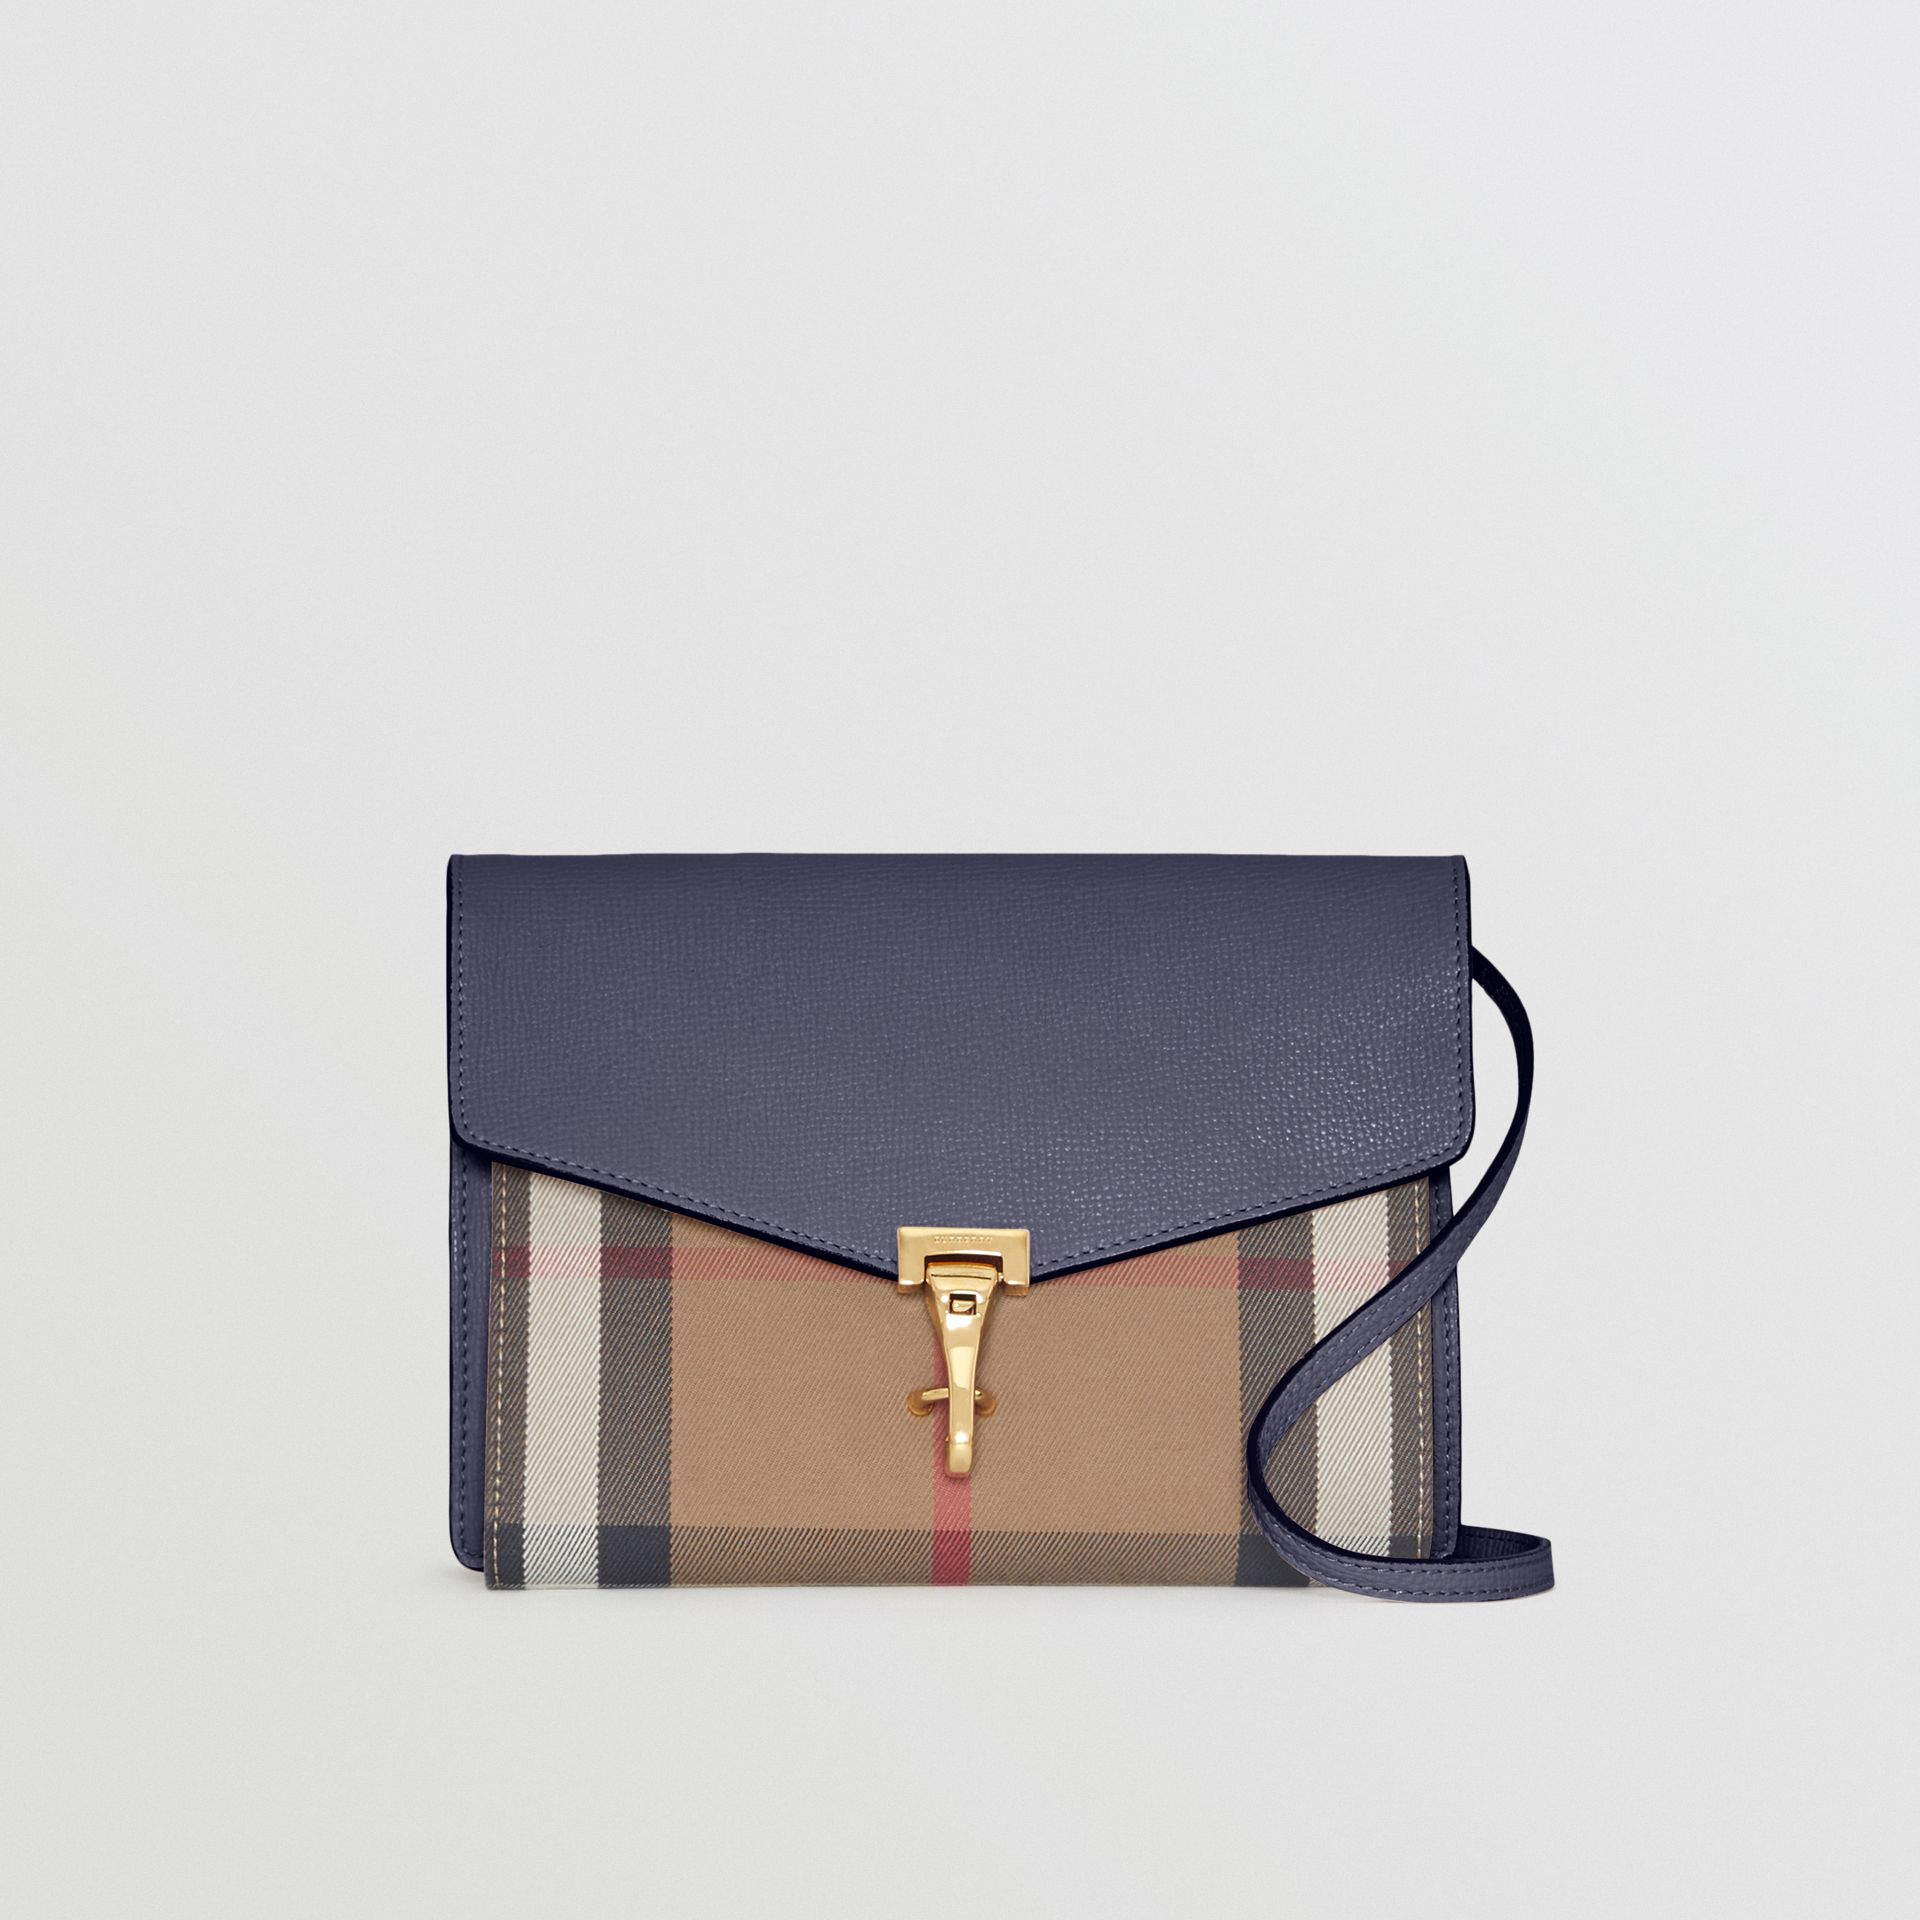 Small Leather and House Check Crossbody Bag in Ink Blue - Women | Burberry Singapore - gallery image 0